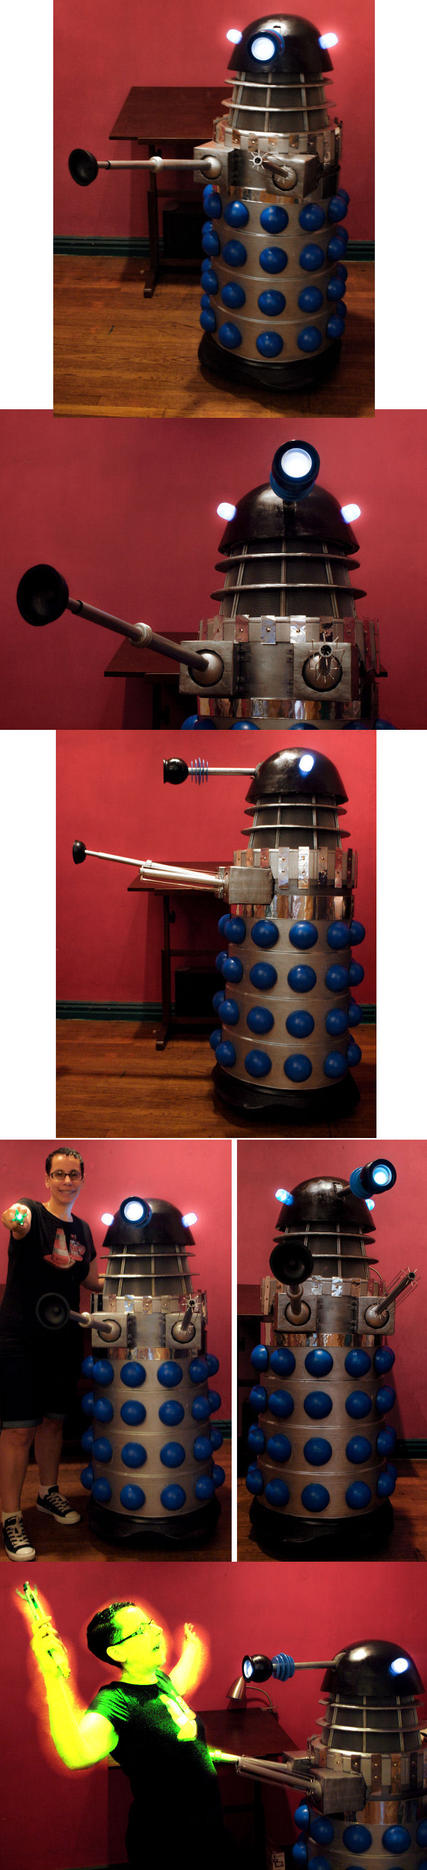 Finished Dalek by ajldesign